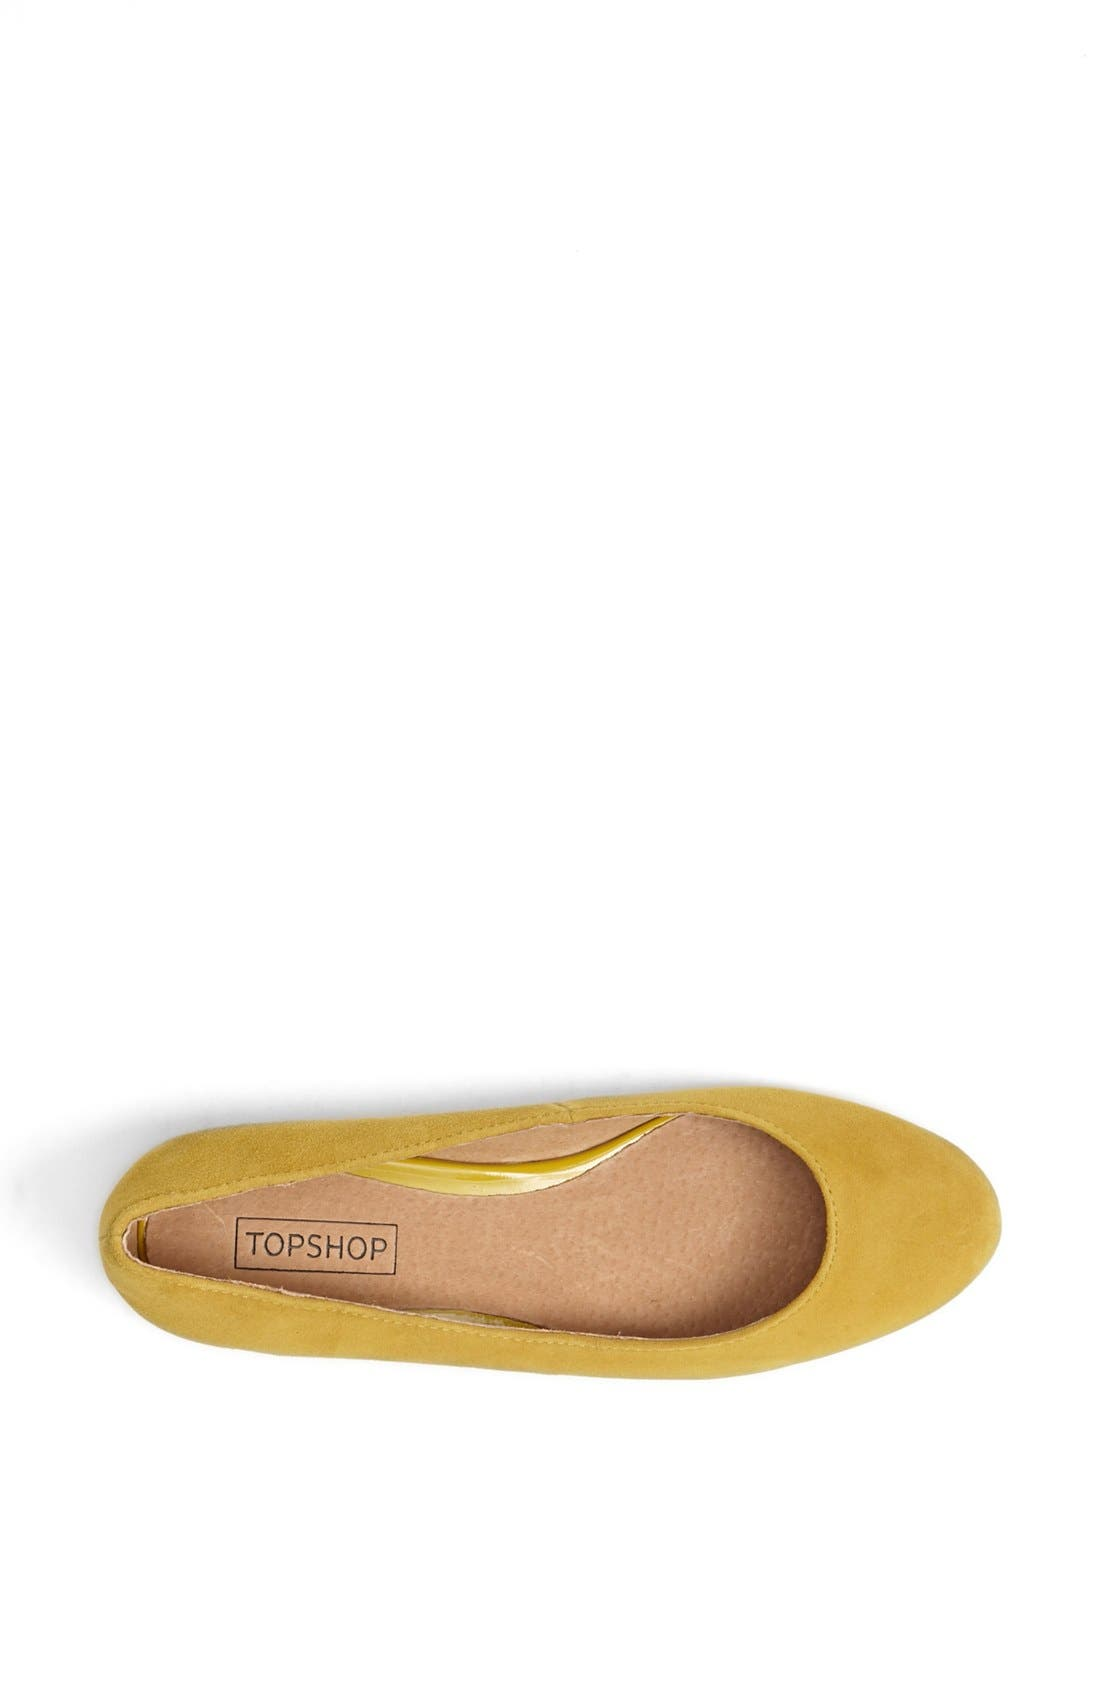 Alternate Image 3  - Topshop 'Mello Mini Wedge' Court Shoe